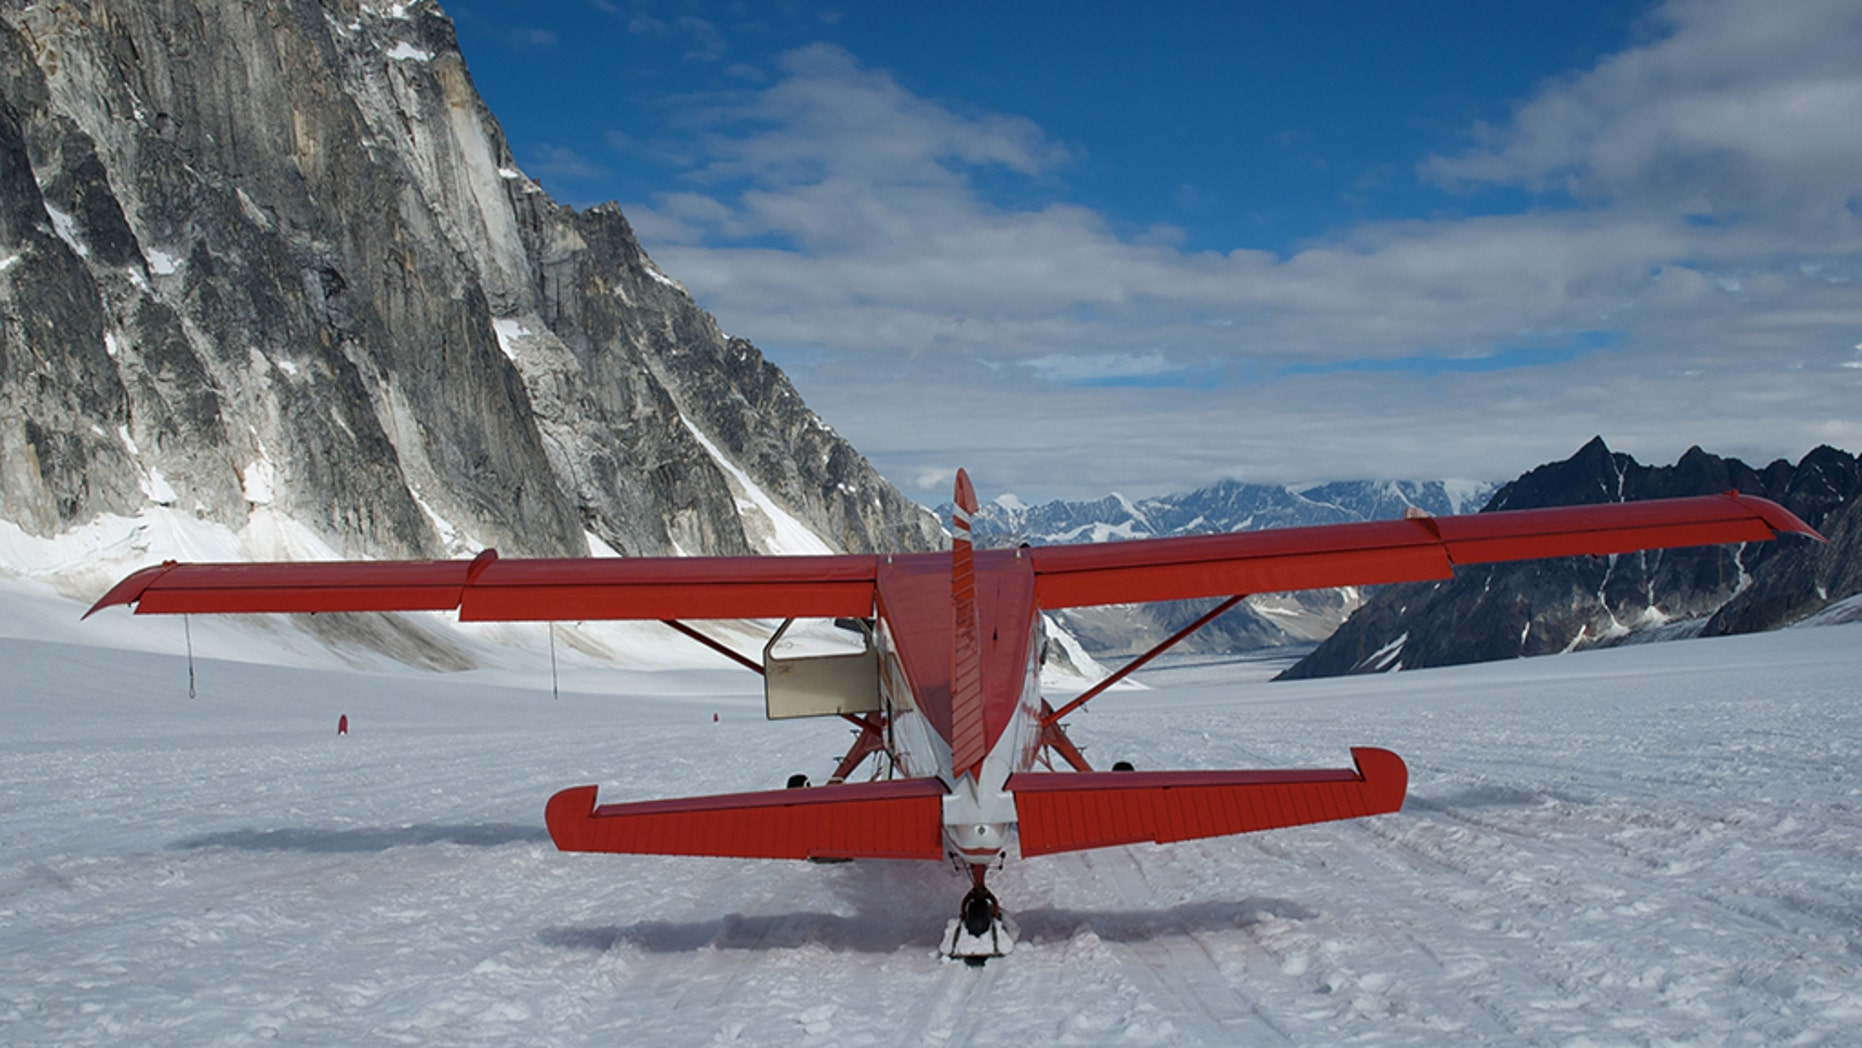 The National Park Service says four people have died in the crash of a sightseeing airplane, similar to the aircraft seen here, in Alaska's Denali National Park after thick clouds hampered rescuers' response to a distress call.